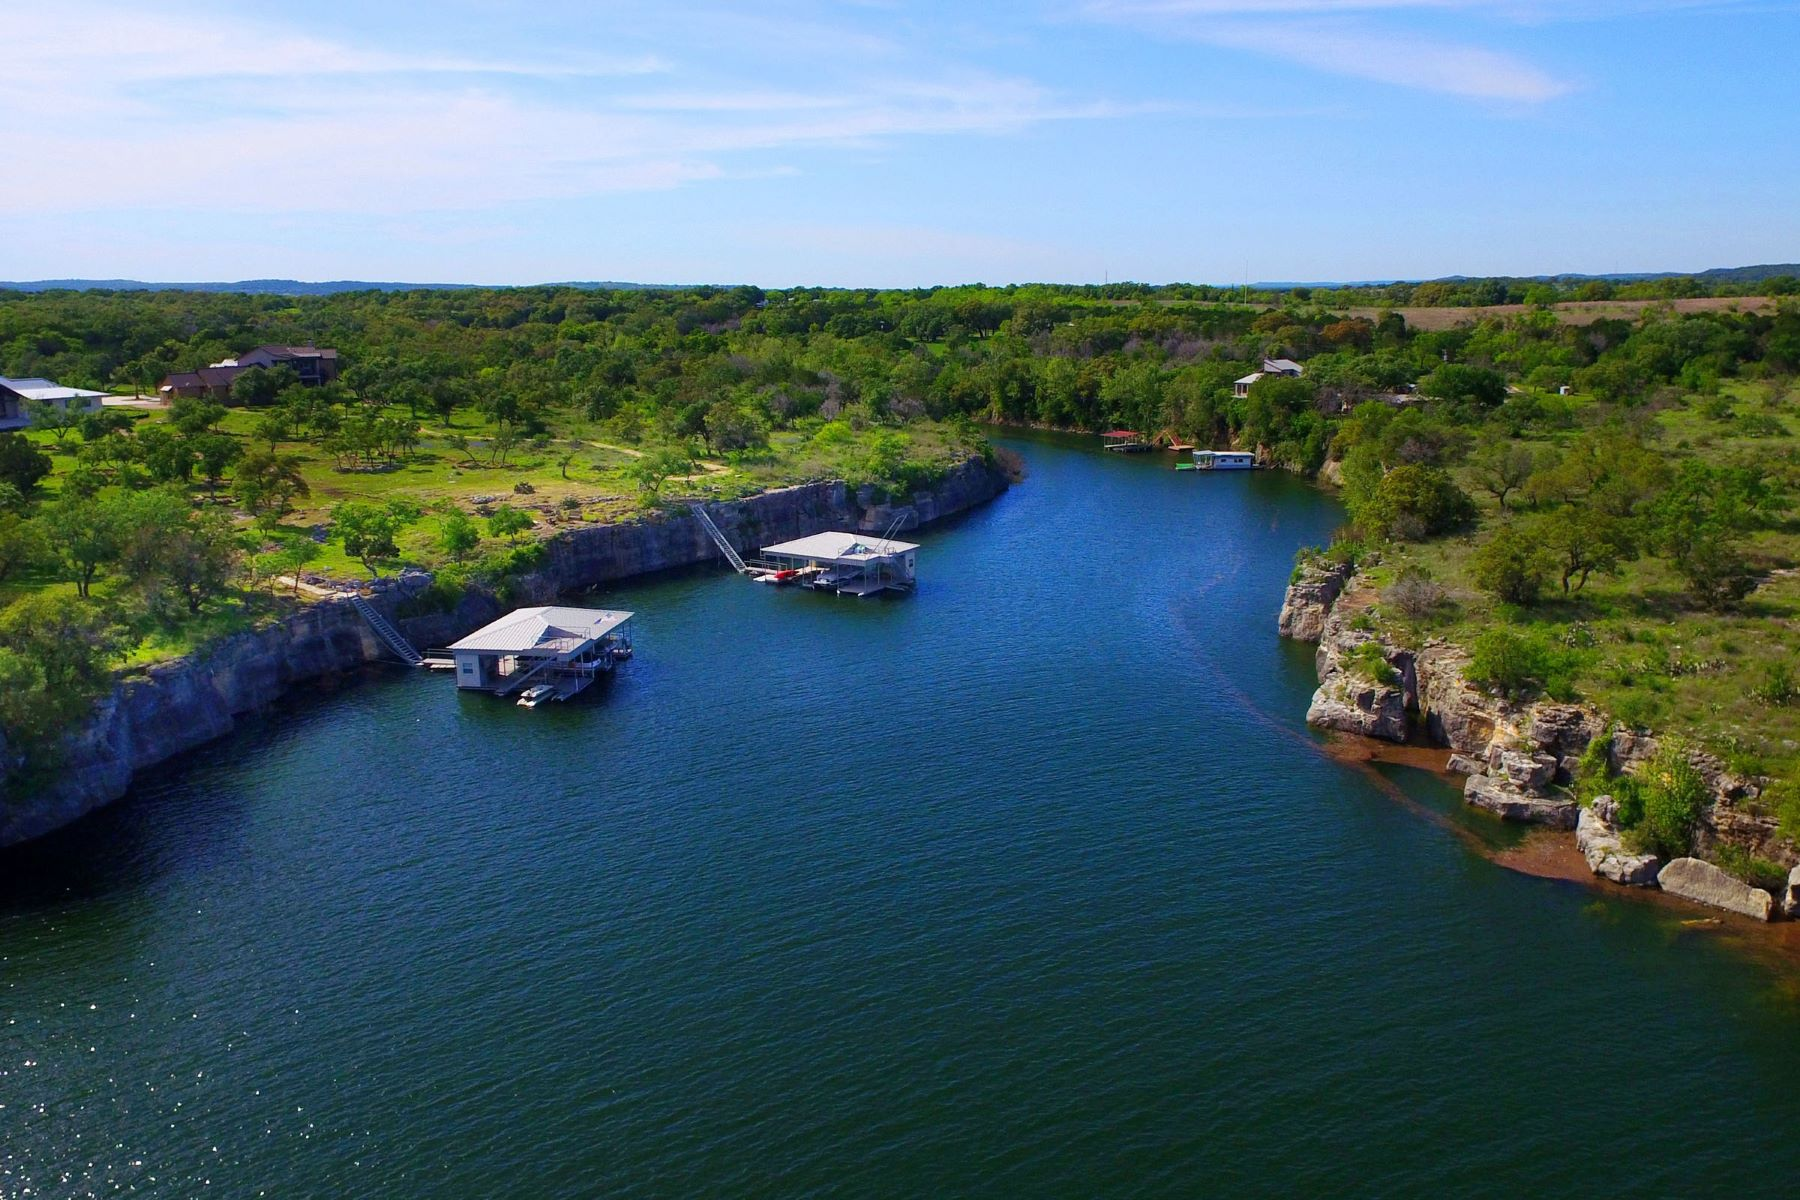 Land for Sale at Beautiful Lot in a Tranquil Community 22713 Mary Nell Ln, Spicewood, Texas, 78669 United States